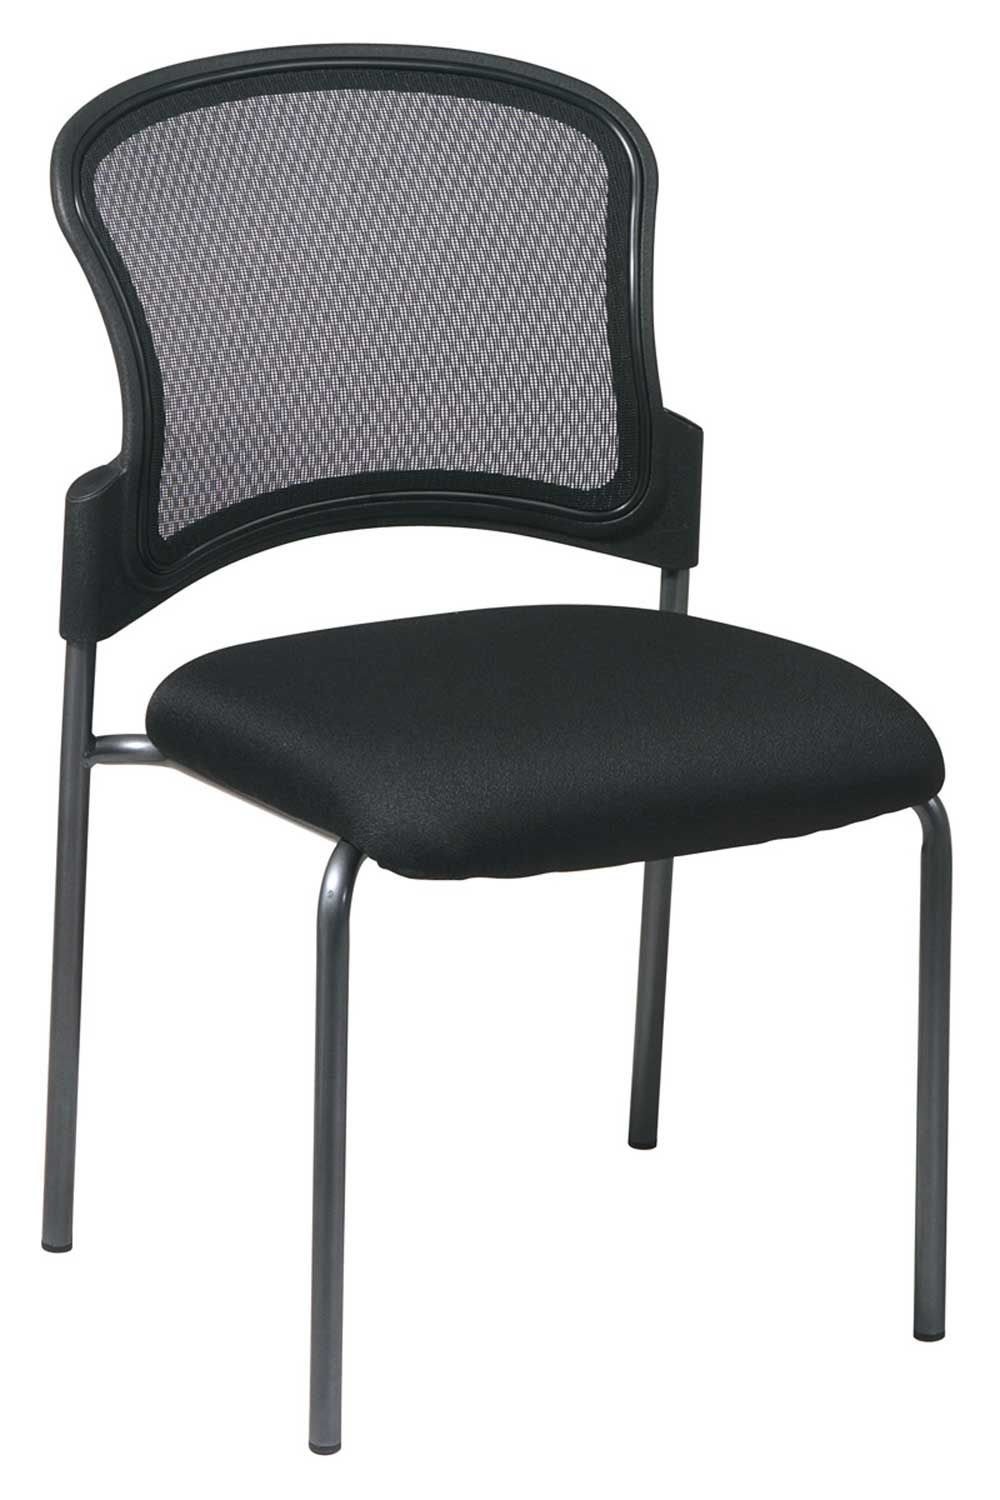 Black Stacking Office Reception Chair Office Star Guest Chair